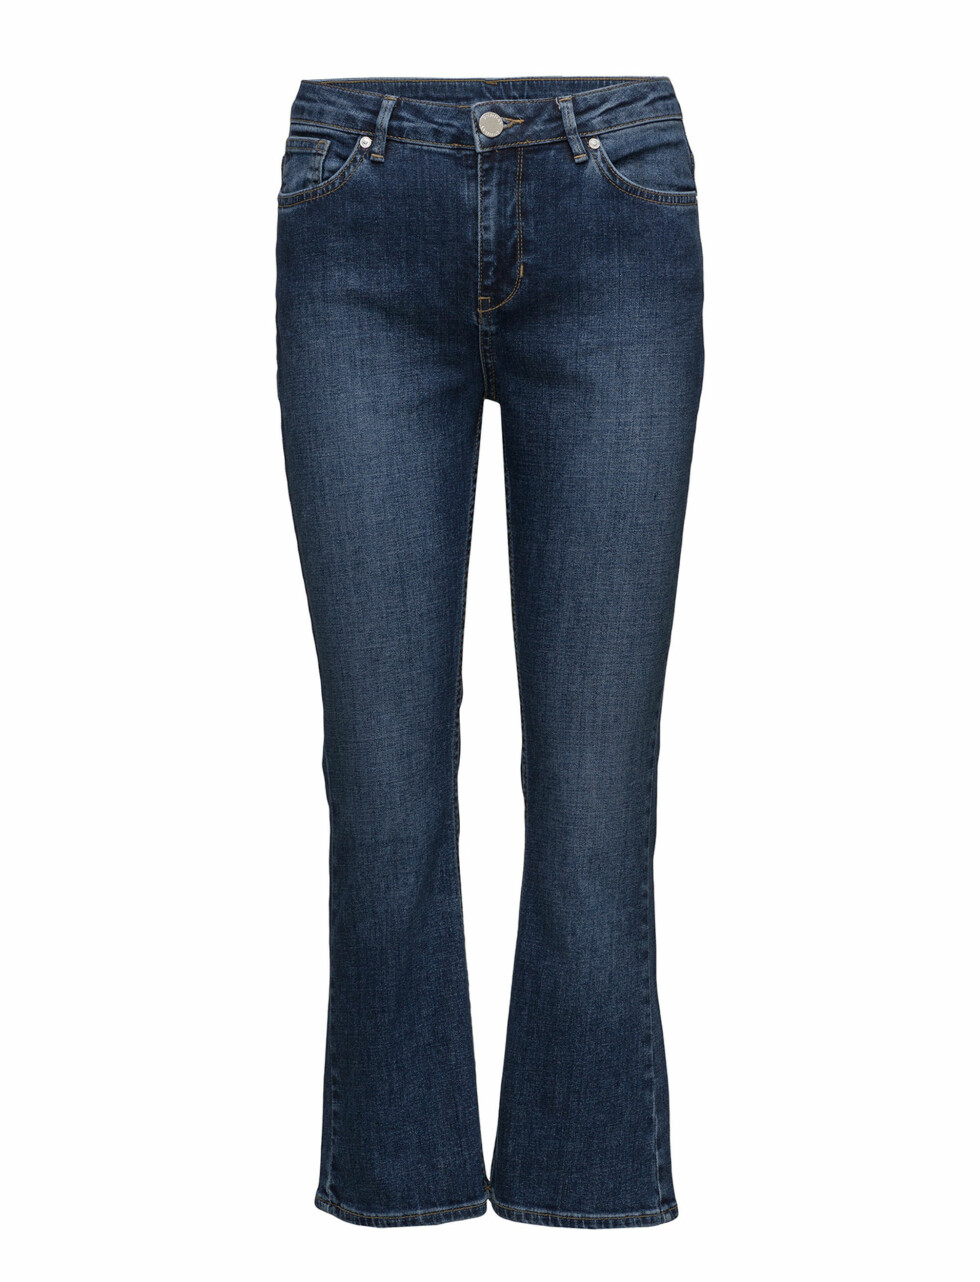 Jeans fra 2NDDAY |1000,-| https://www.boozt.com/no/no/2nd-day/2nd-figara-blue_16680452/16680456?position=6&relNavId=67387&group=related_categories